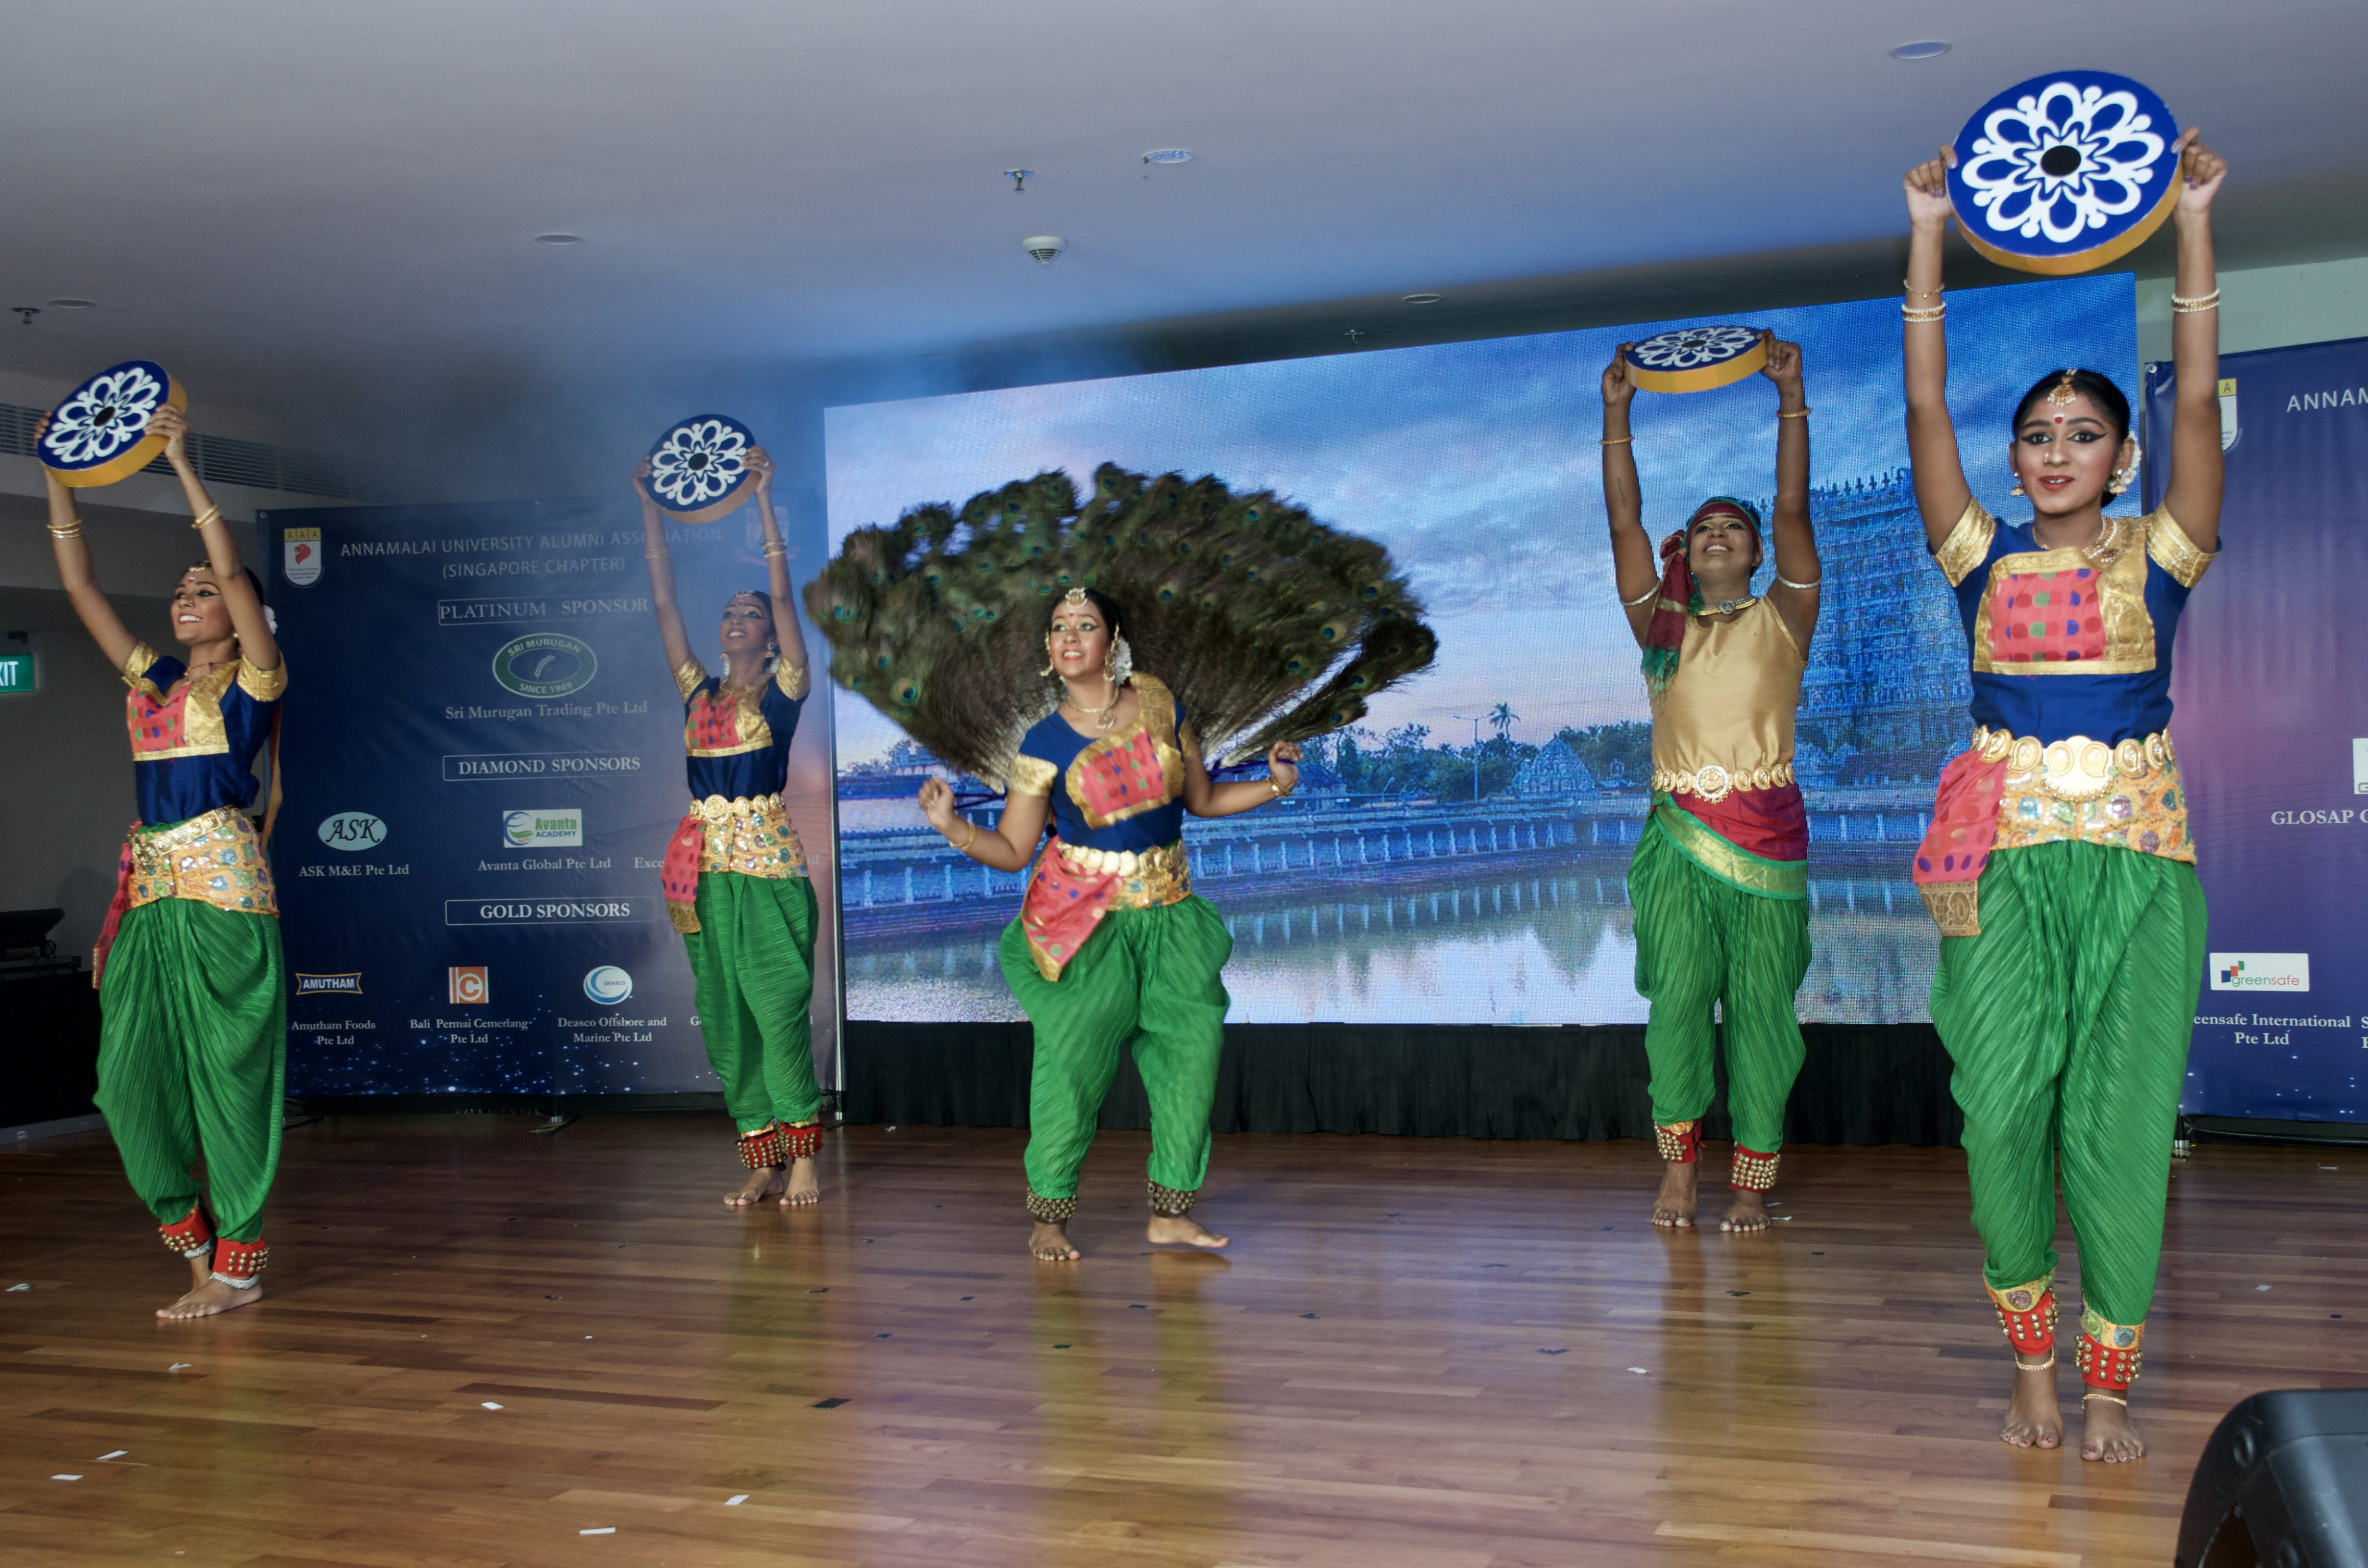 an enchanting dance ensemble showcasing the multi-cultural ethos of Singapore.